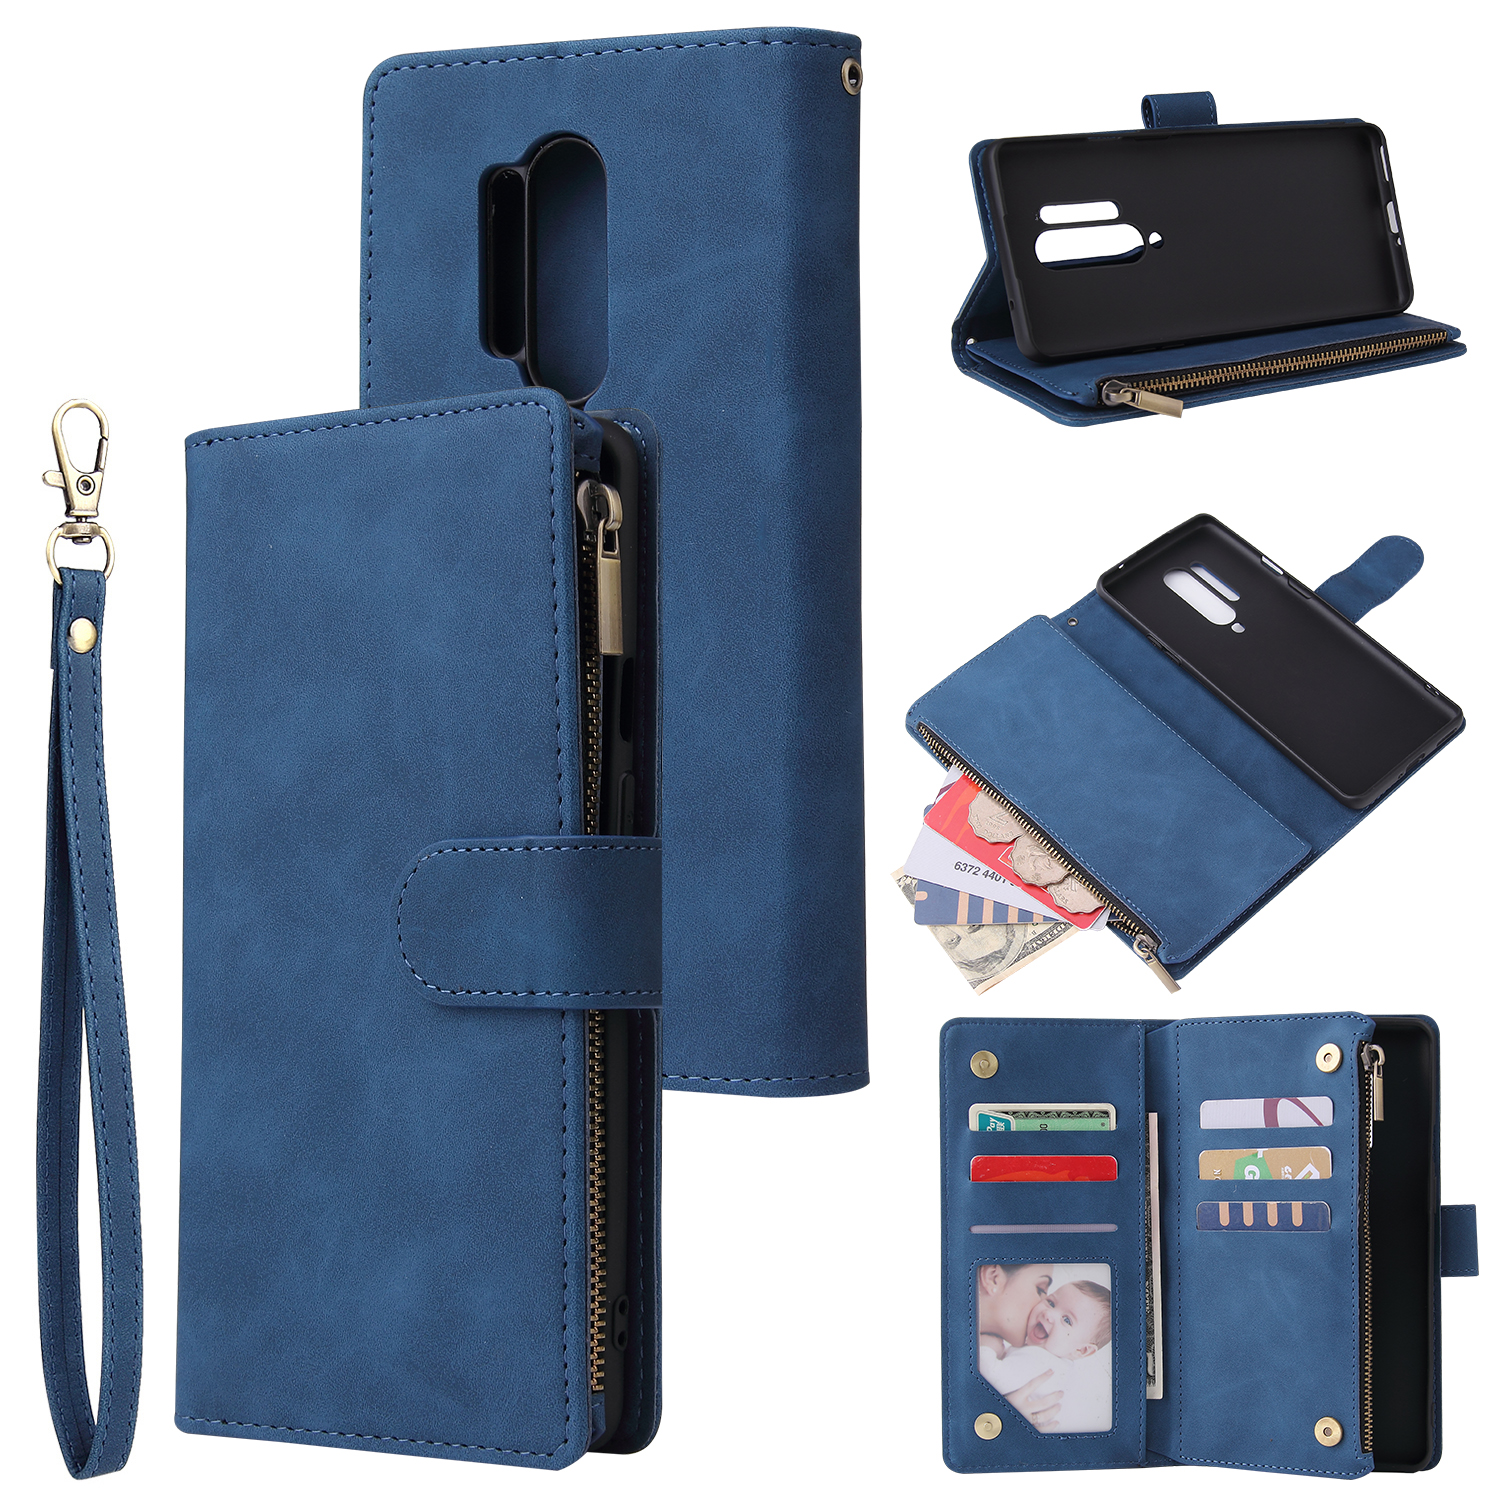 For One plus 8 pro Mobile Phone Case Smartphone Shell Wallet Design Zipper Closure Overall Protection Cellphone Cover  2 blue